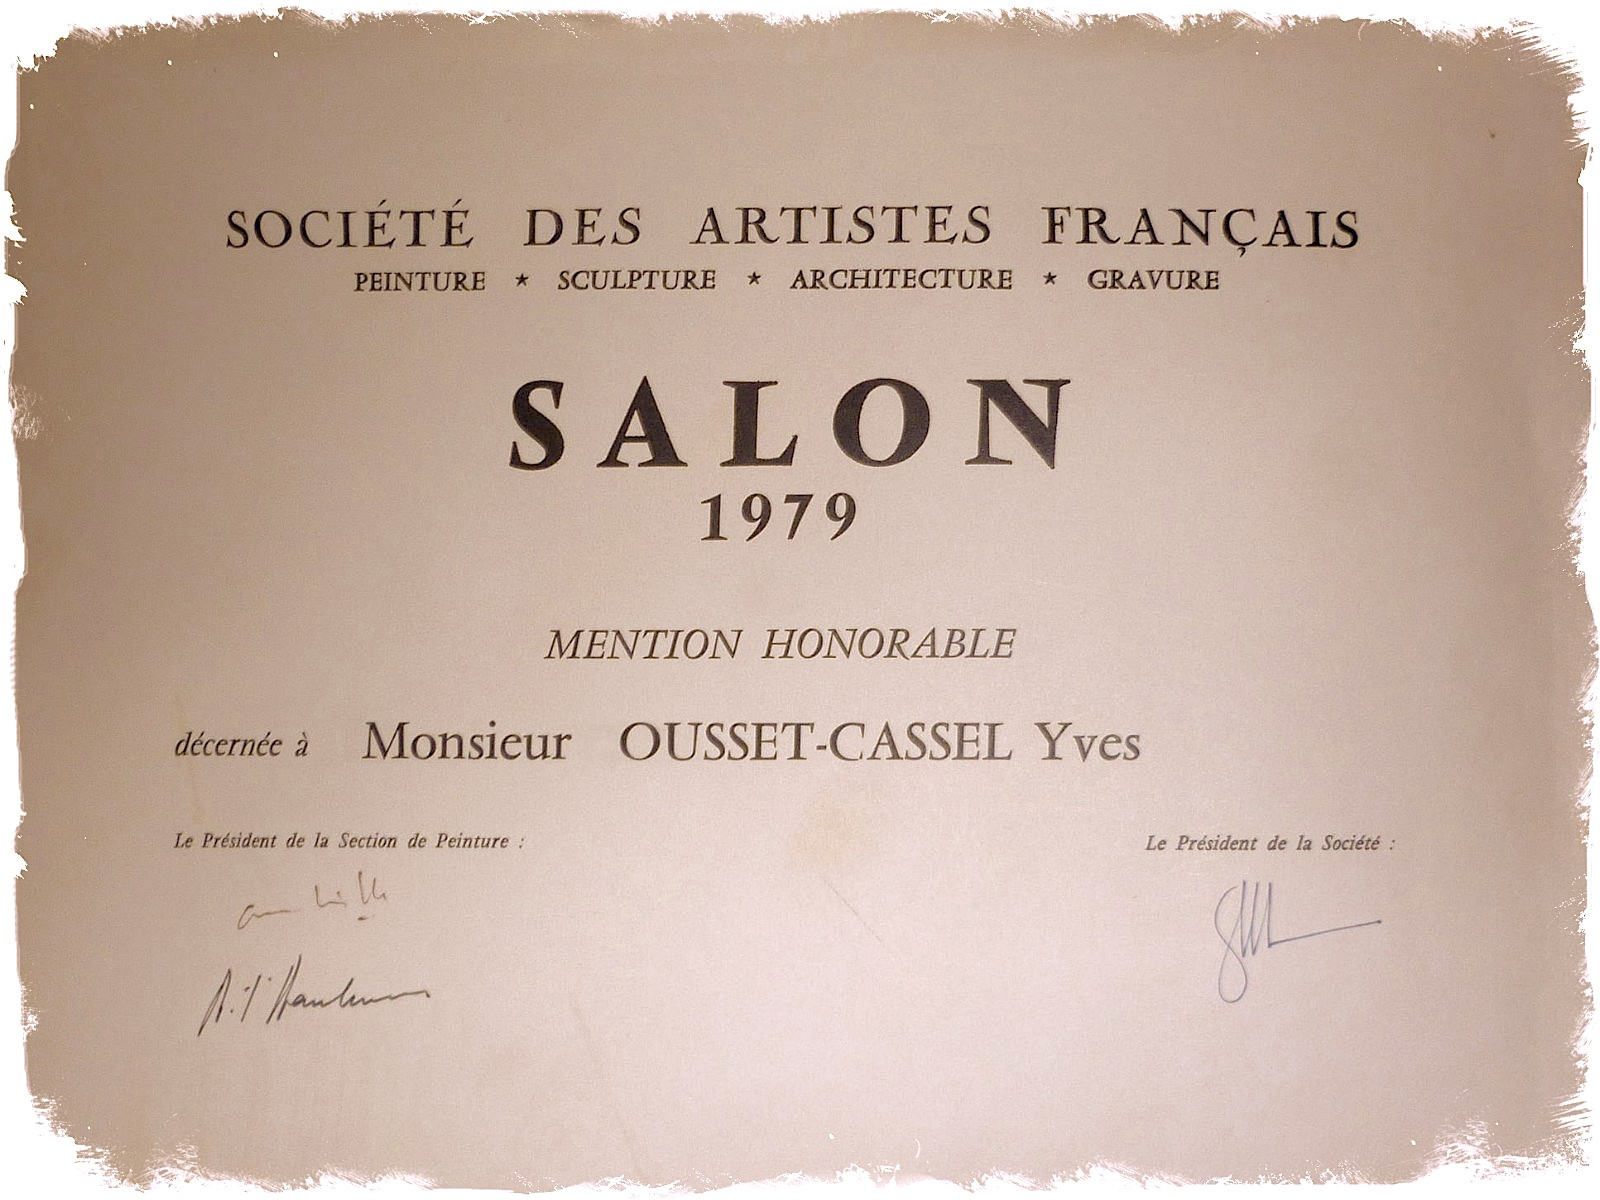 AAR © Yves OUSSET-CASSEL Mention honorable 3